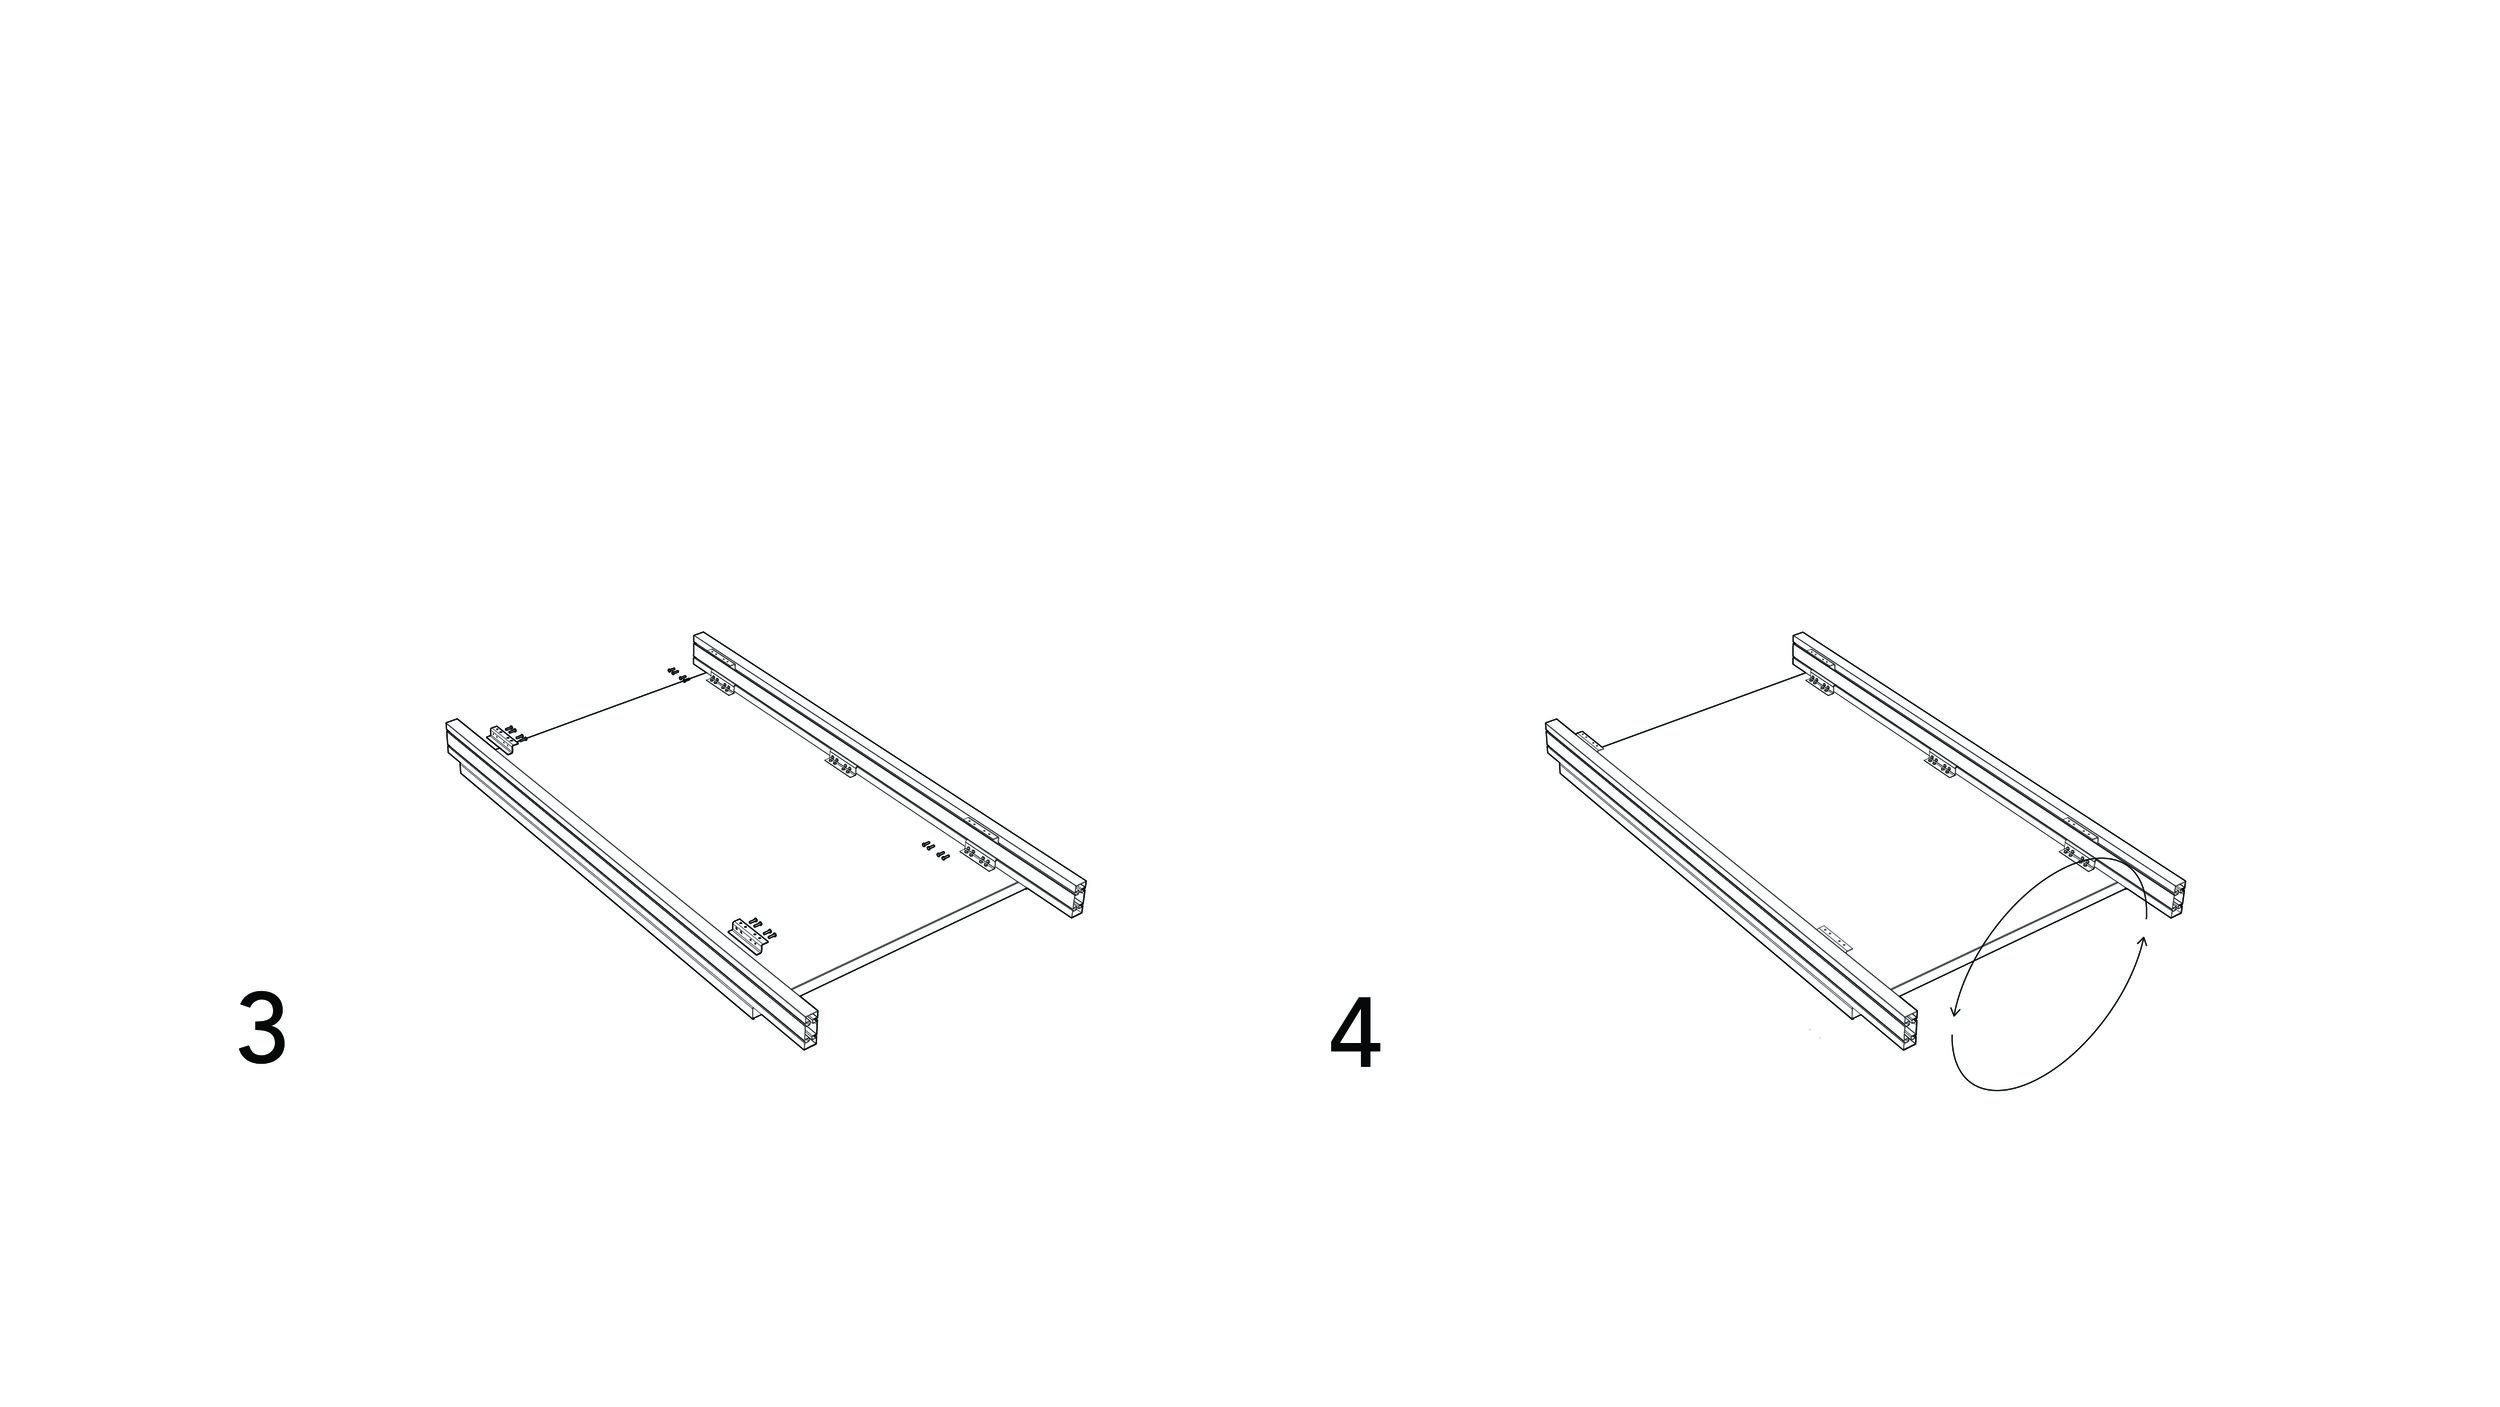 Ikea instructions-04.jpg